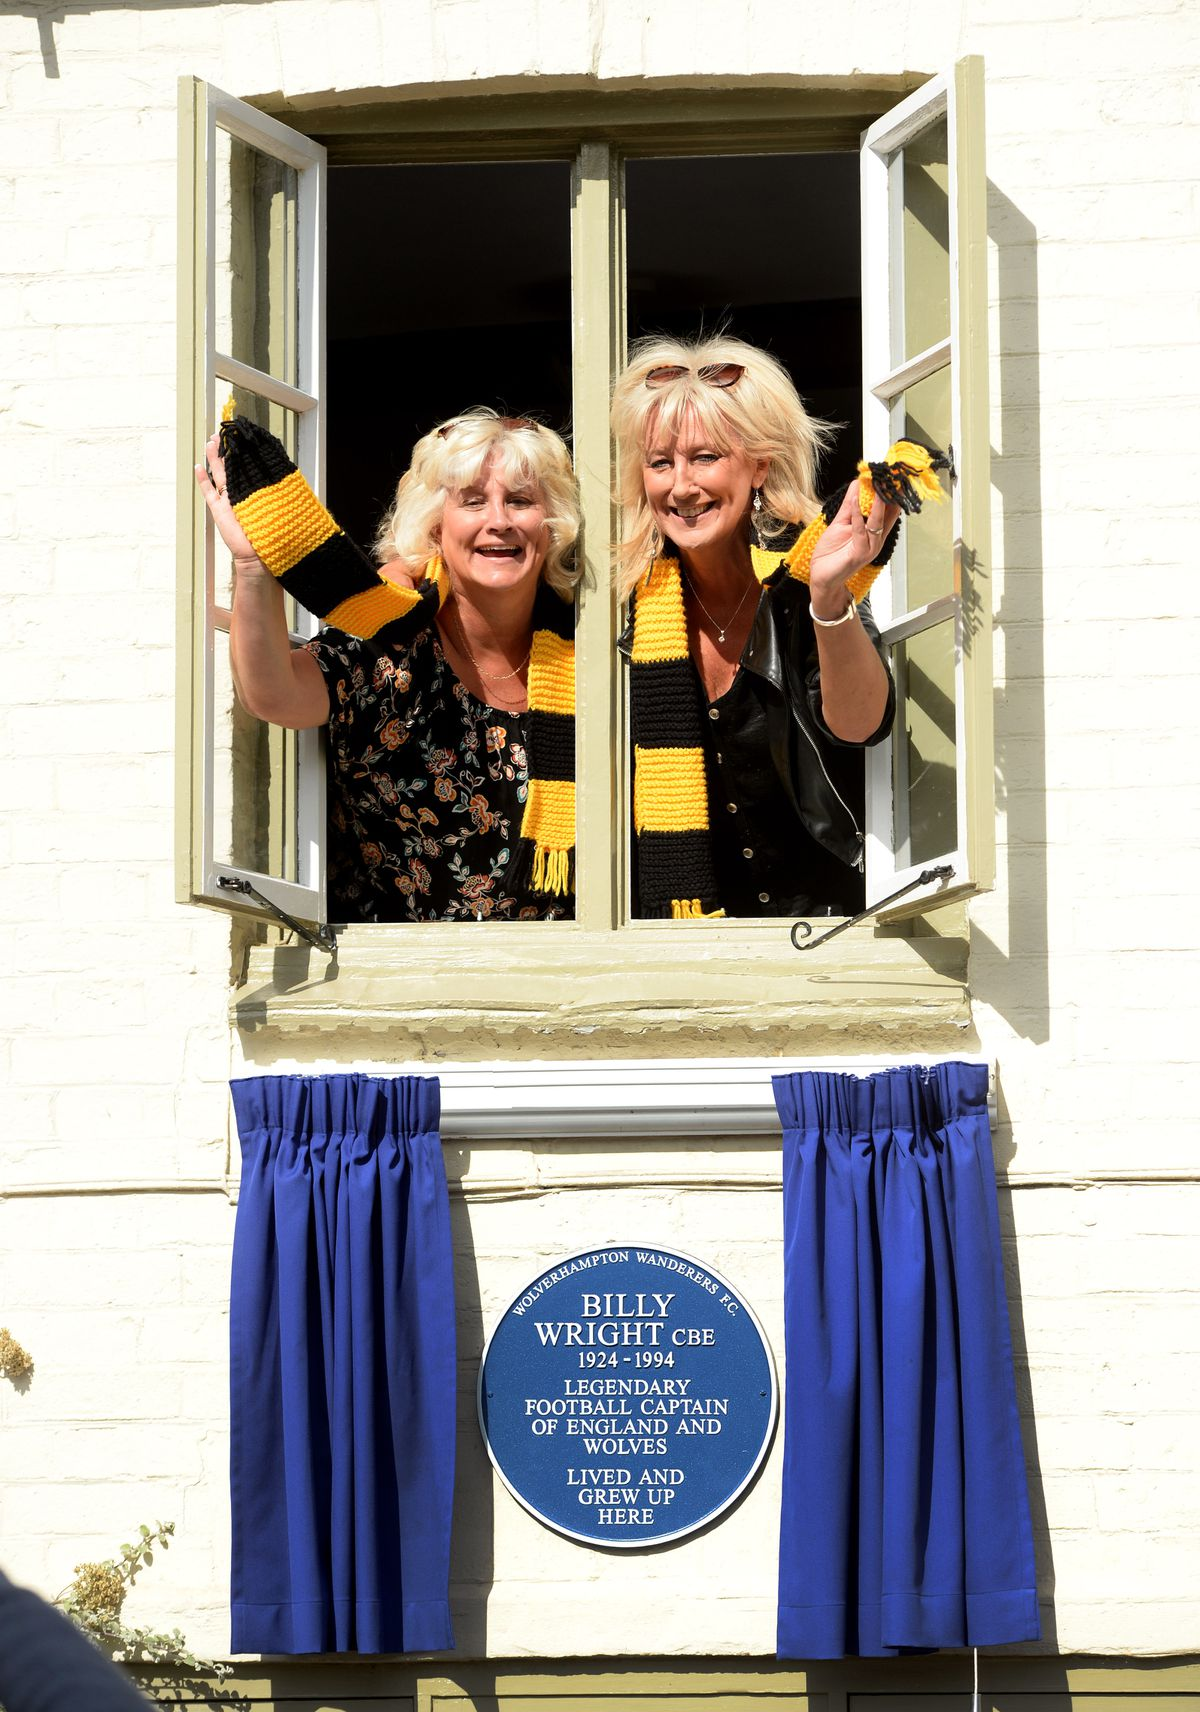 Billy Wright's daughters Vicky and Babette with the plaque